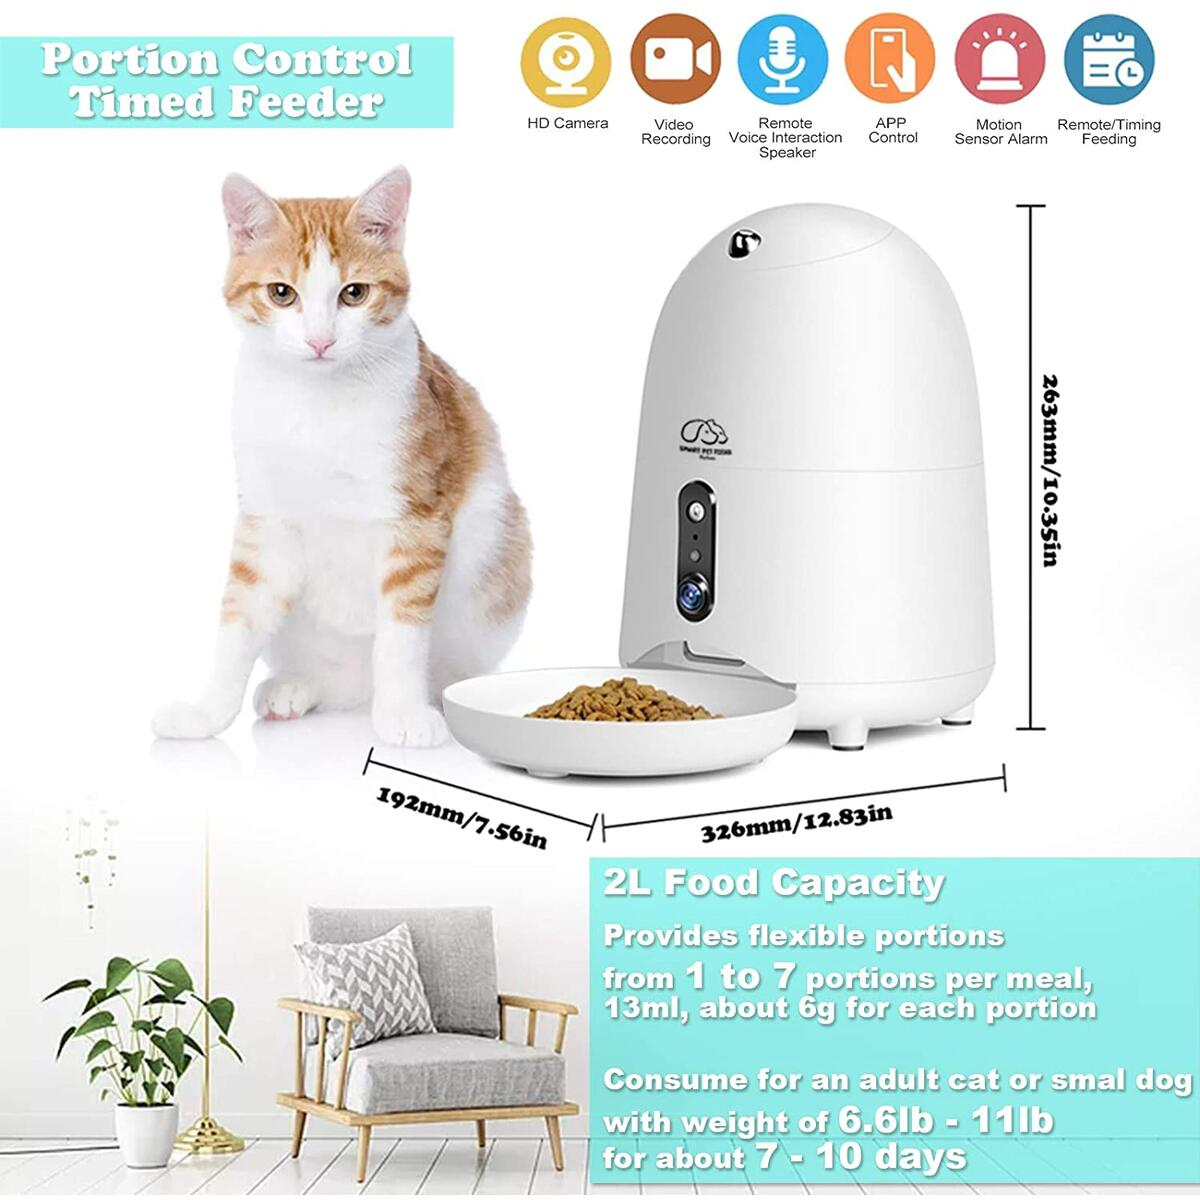 Automatic Cat Feeder, HD Camera WiFi Enabled Smart Auto Pet Feeder, Programmable Timed Dog Food Dispenser, Portion Control, Night Vision, Voice and Video Recording, App for iPhone and Android